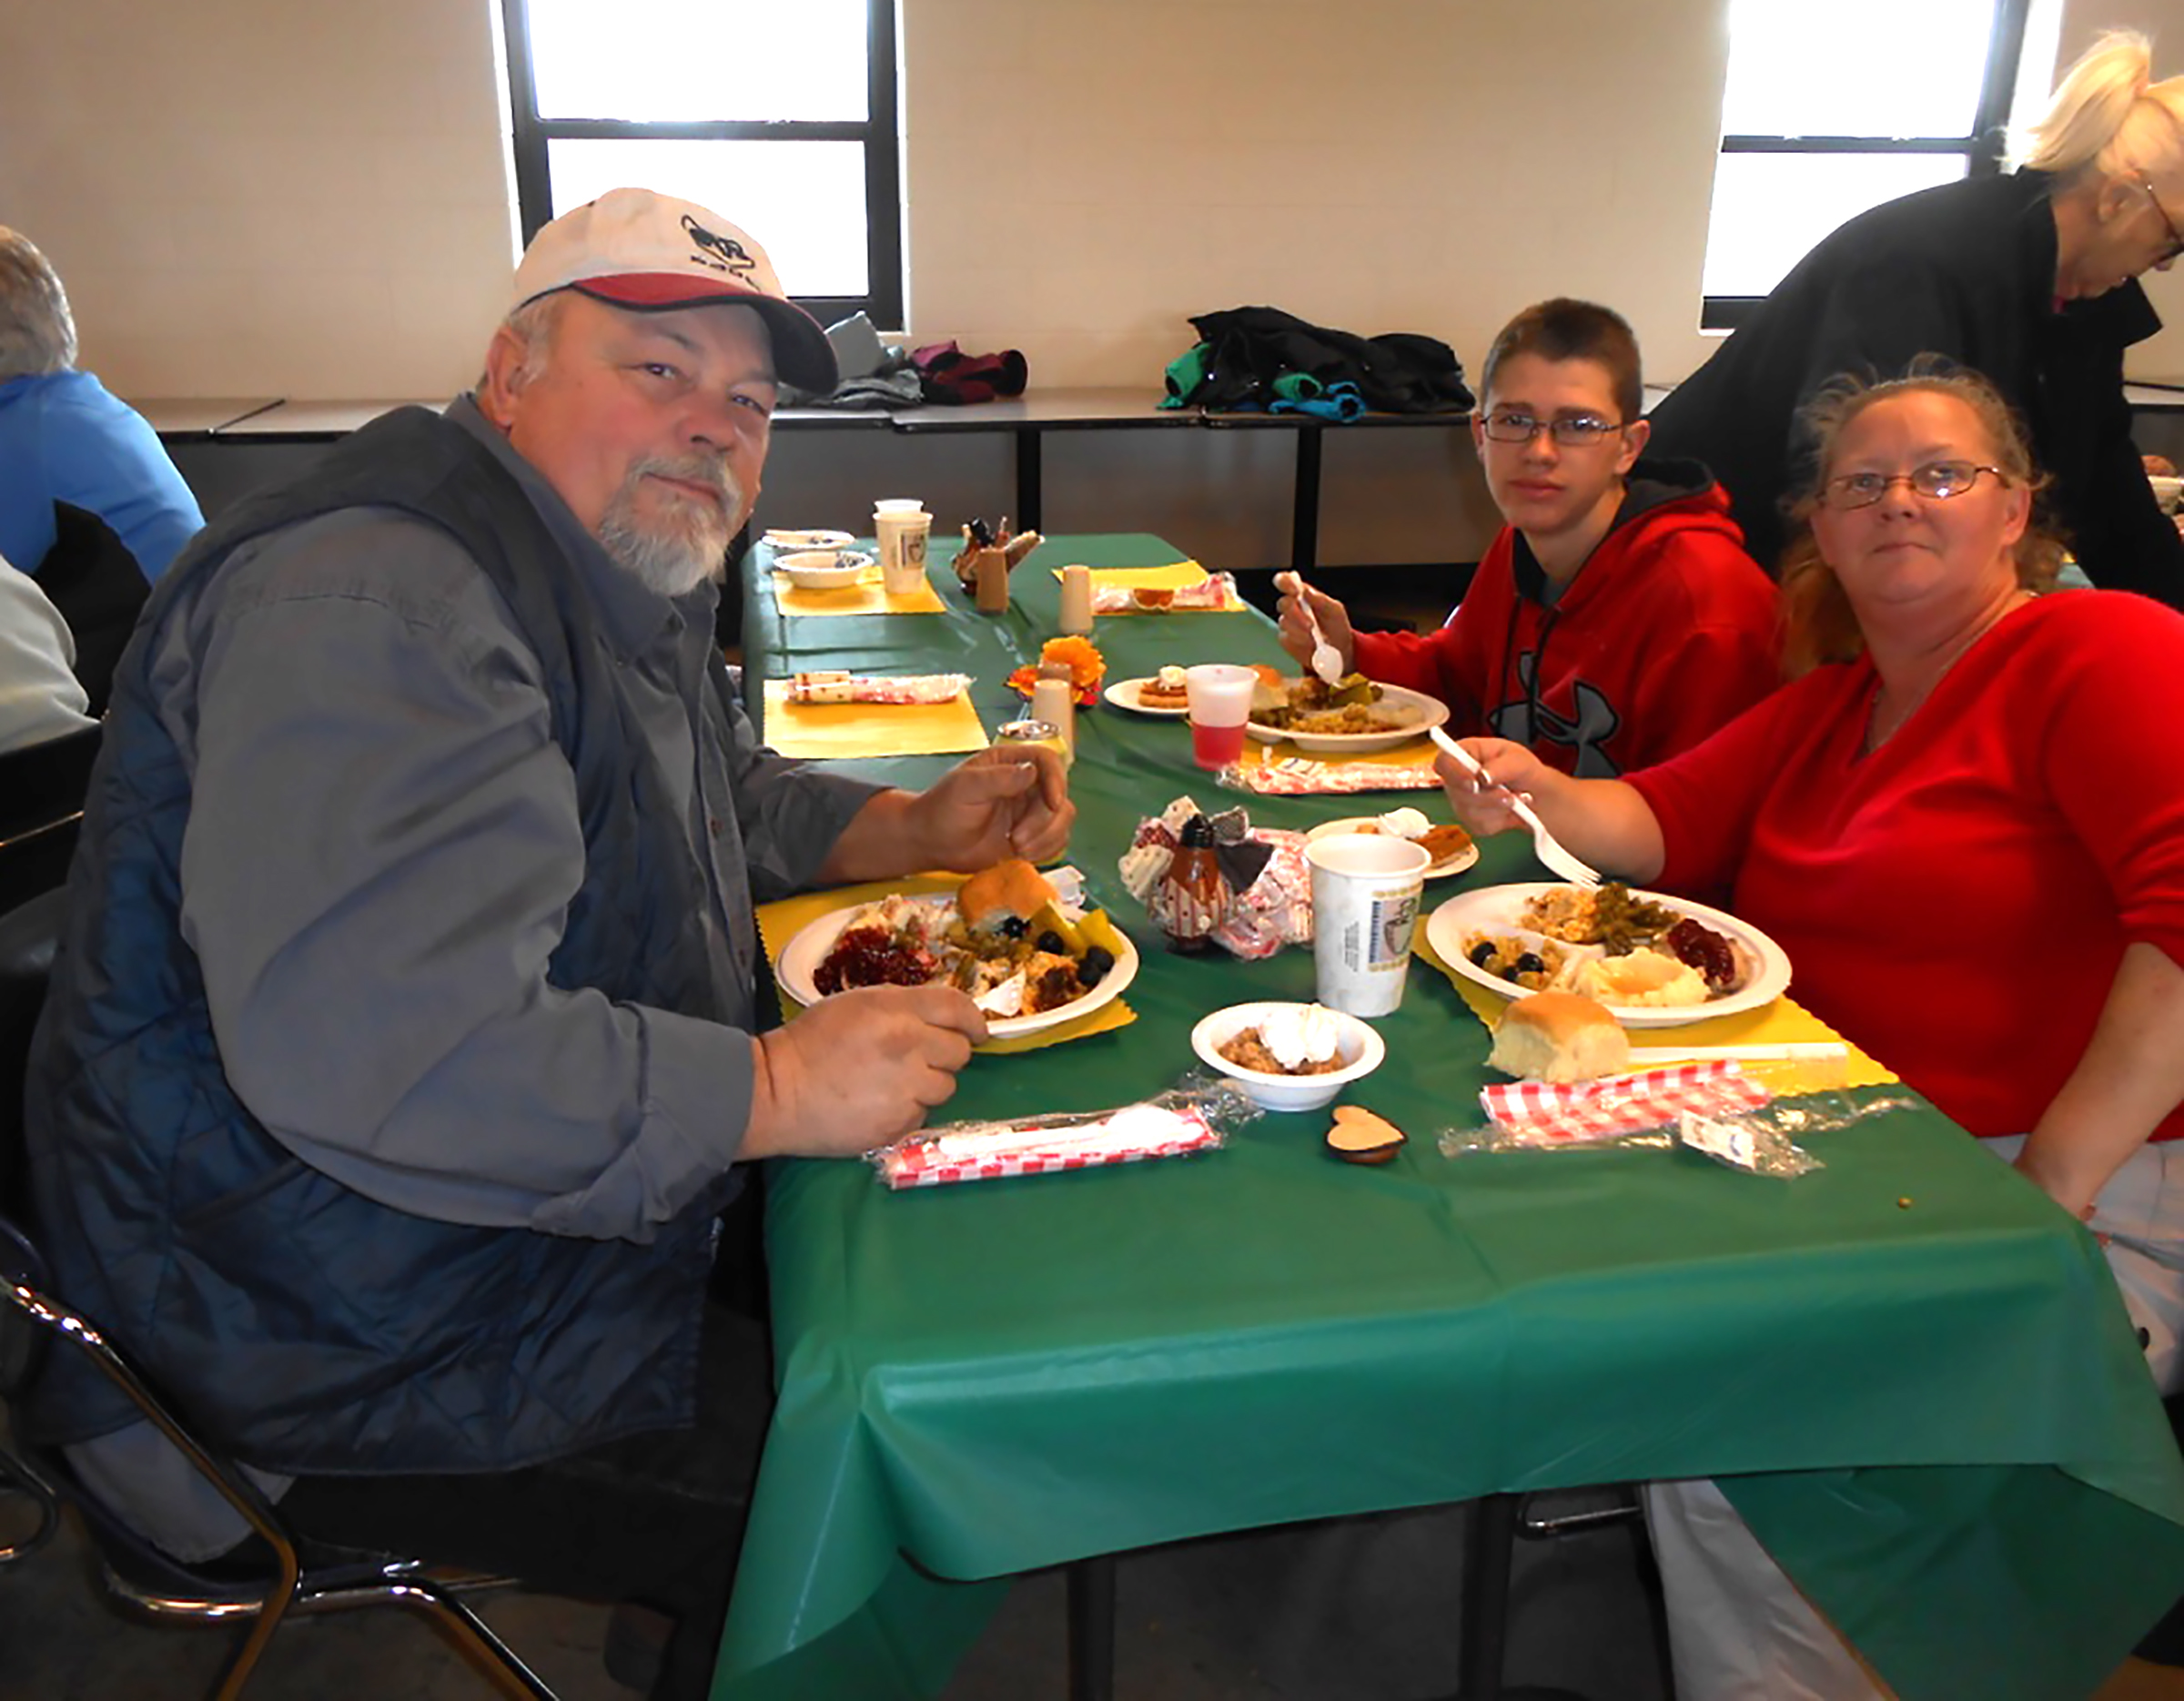 Mike Beanes, Sharon Bunker and Blake Berridge enjoy their meals at the dining hall located at the airfield.